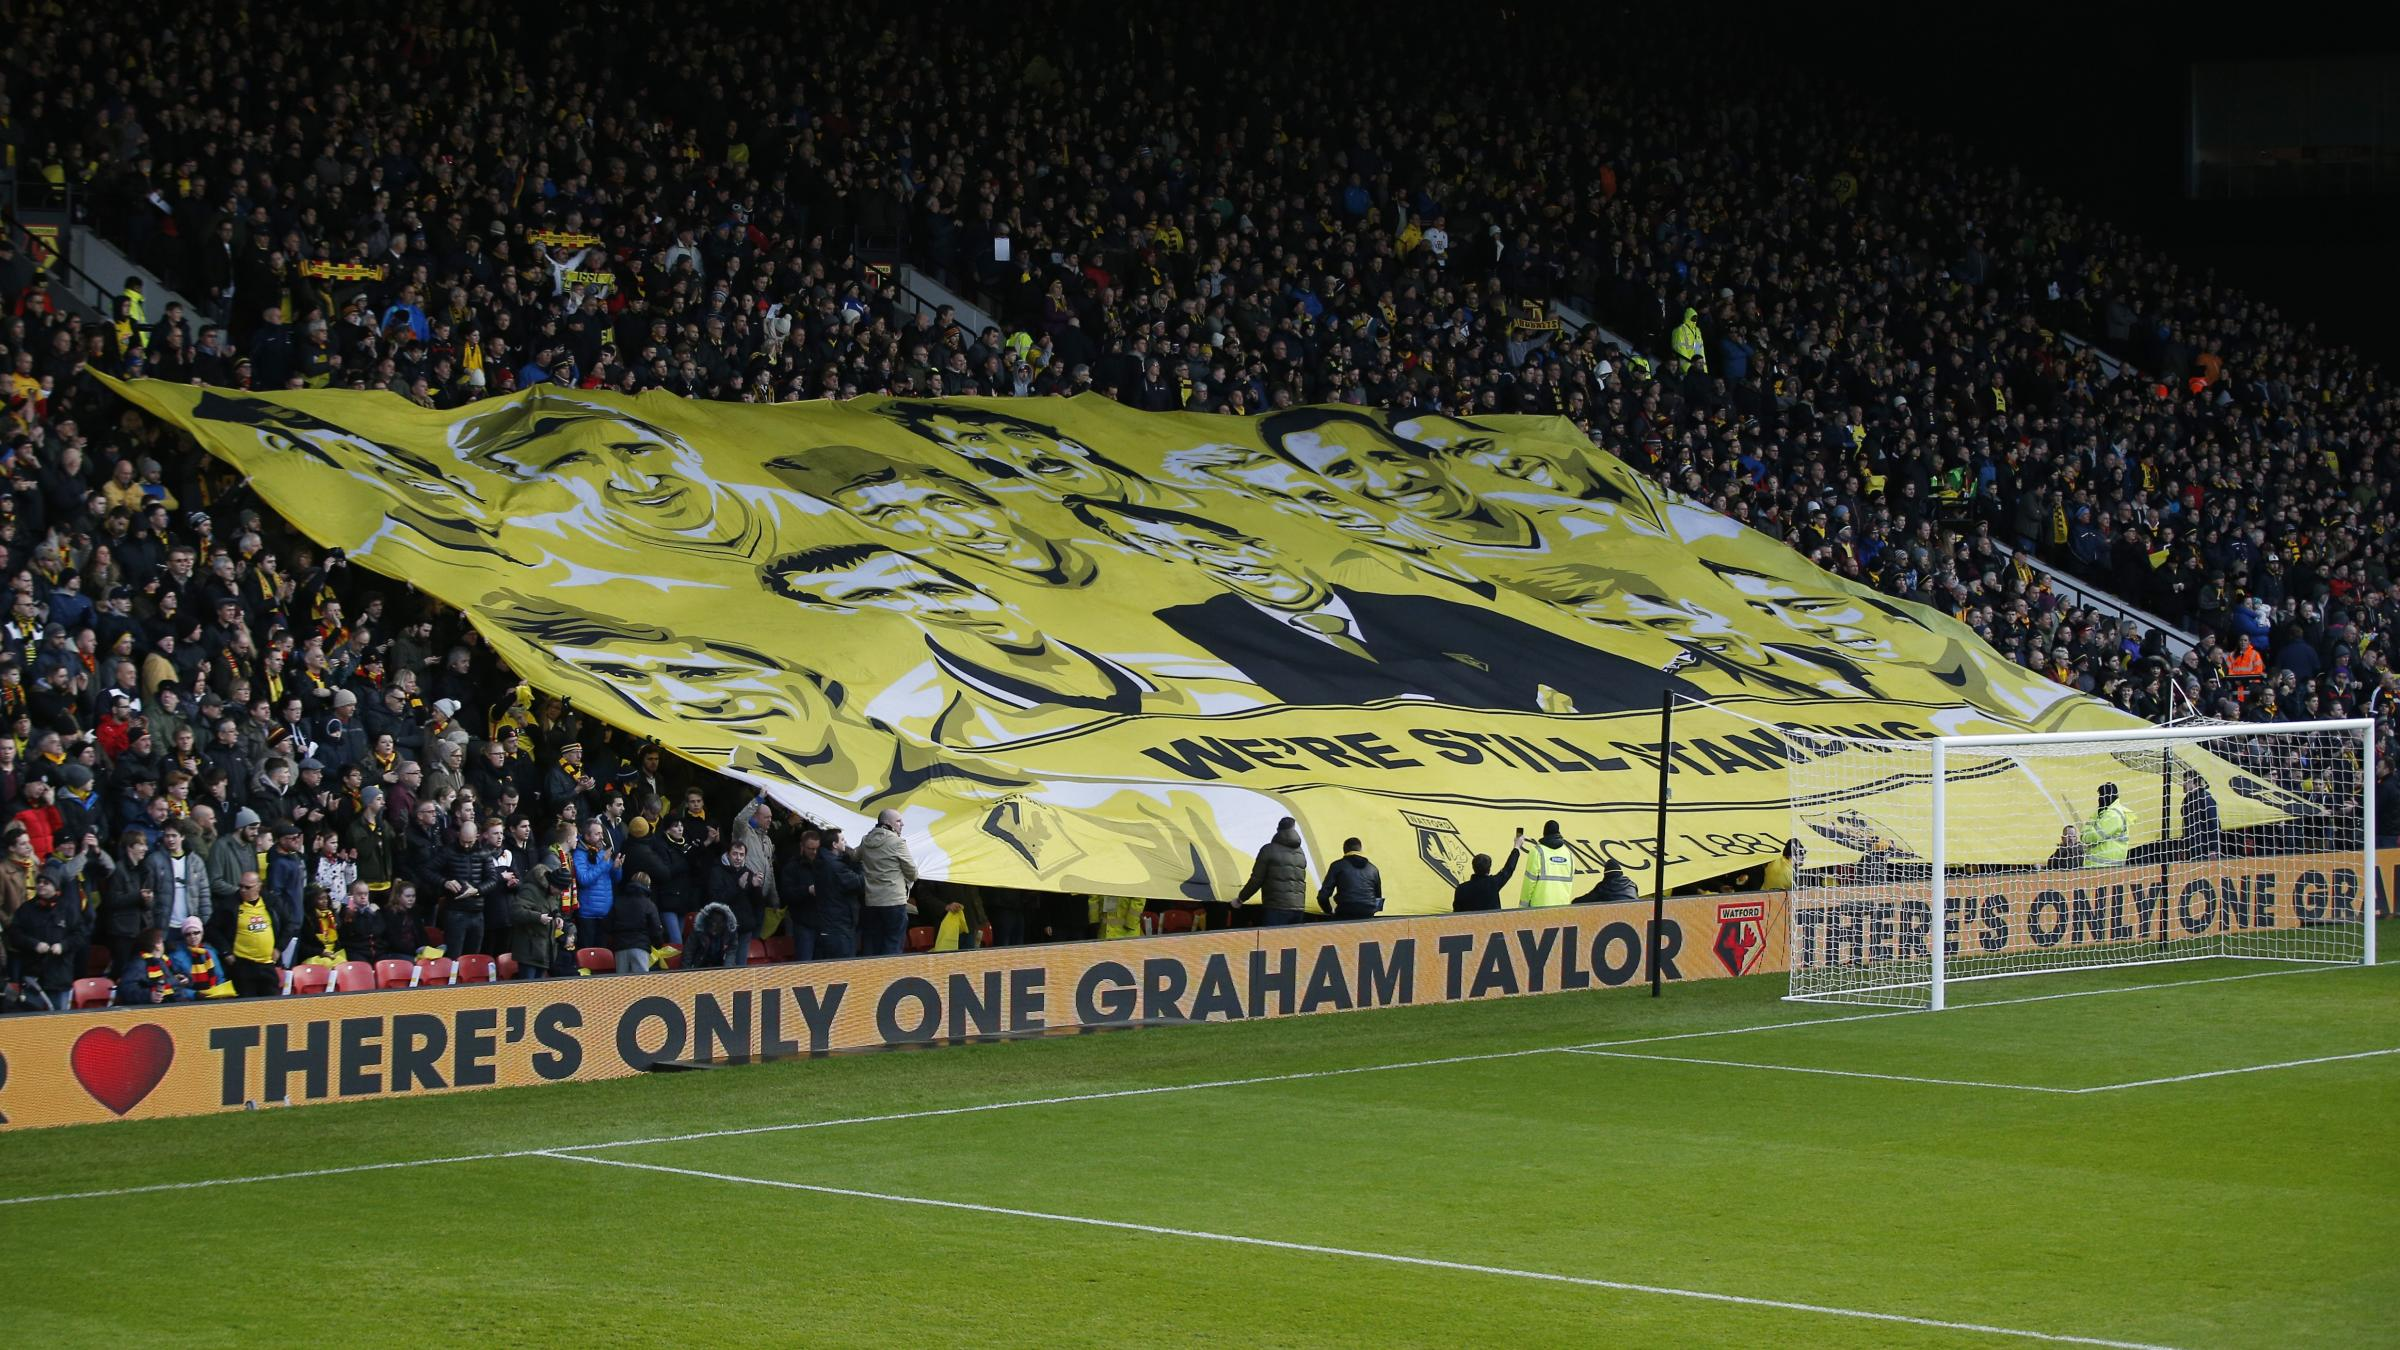 The 1881's Watford legends banner. Picture: Action Images